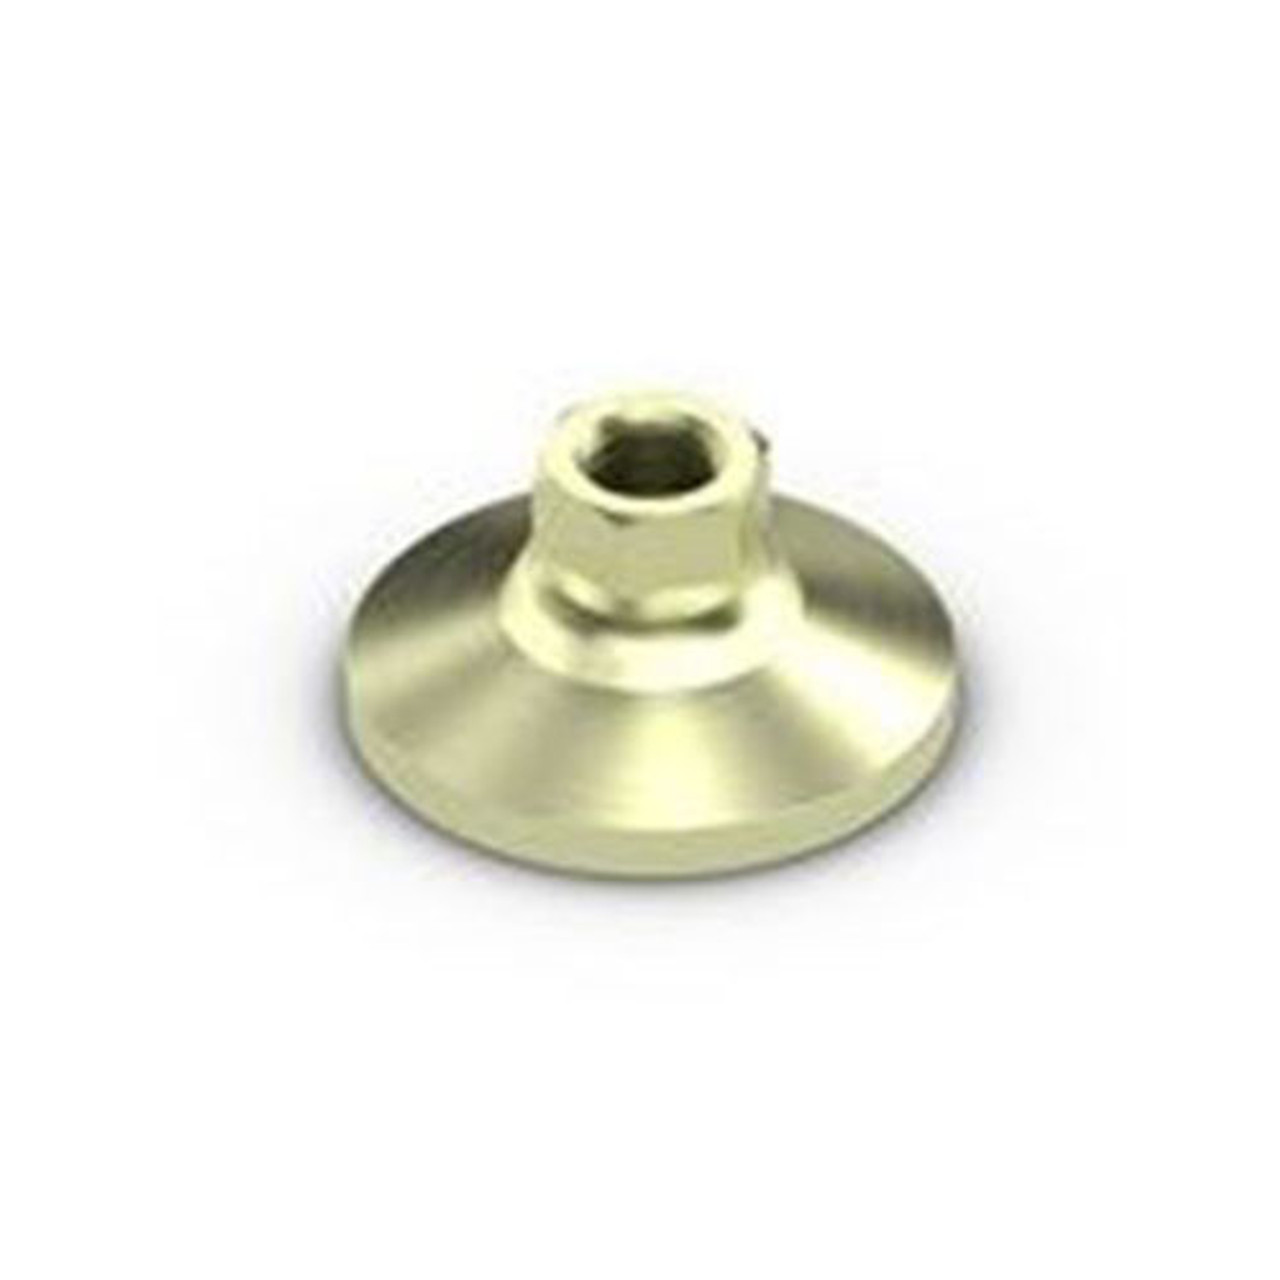 Jergens 5/8 In-11 TPI UNC-2B Thread Type 2-1/2 In Base Diameter 1-1/4 In Height 6000 lb Load Capacity Tapped Leveling Mount EDP: 32610